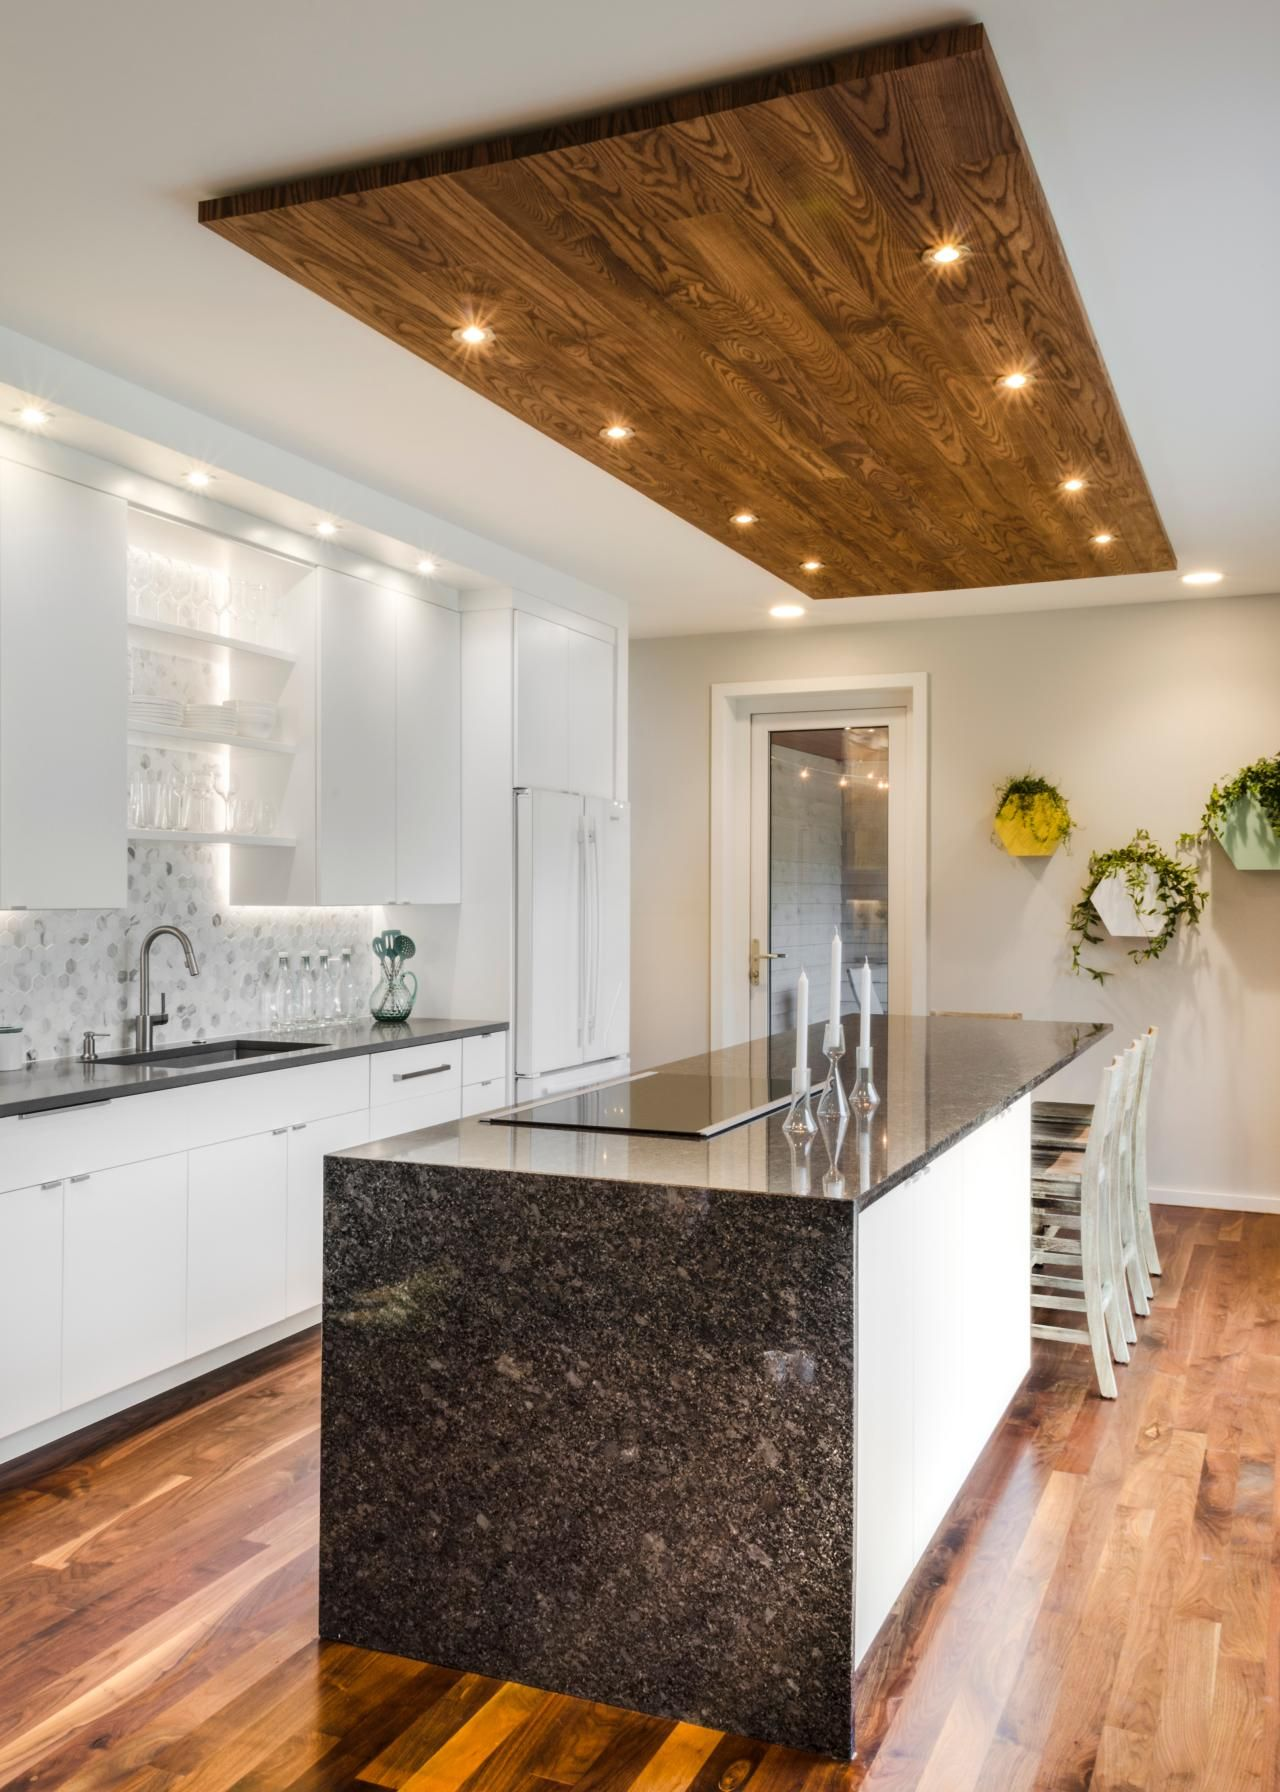 Kitchen Ceiling Ideas Kitchen Ceiling Ideas Vaulted And 3d Drop Ceiling In 2020 House Ceiling Design Kitchen Ceiling Design Kitchen Ceiling